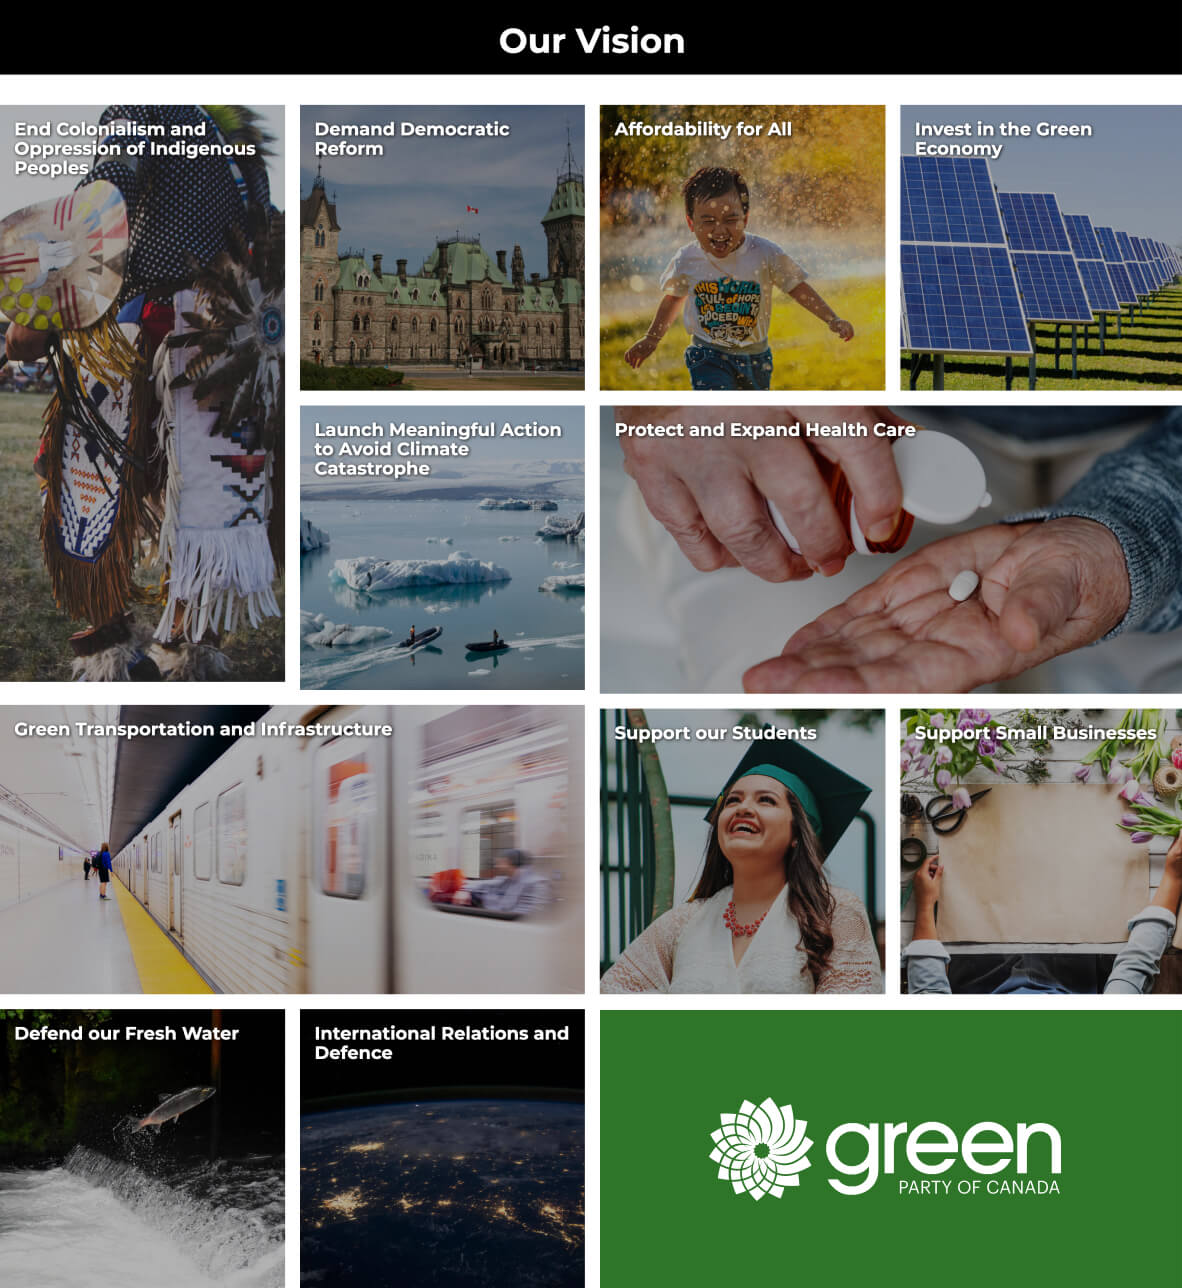 Green-Party-Canada-Vision